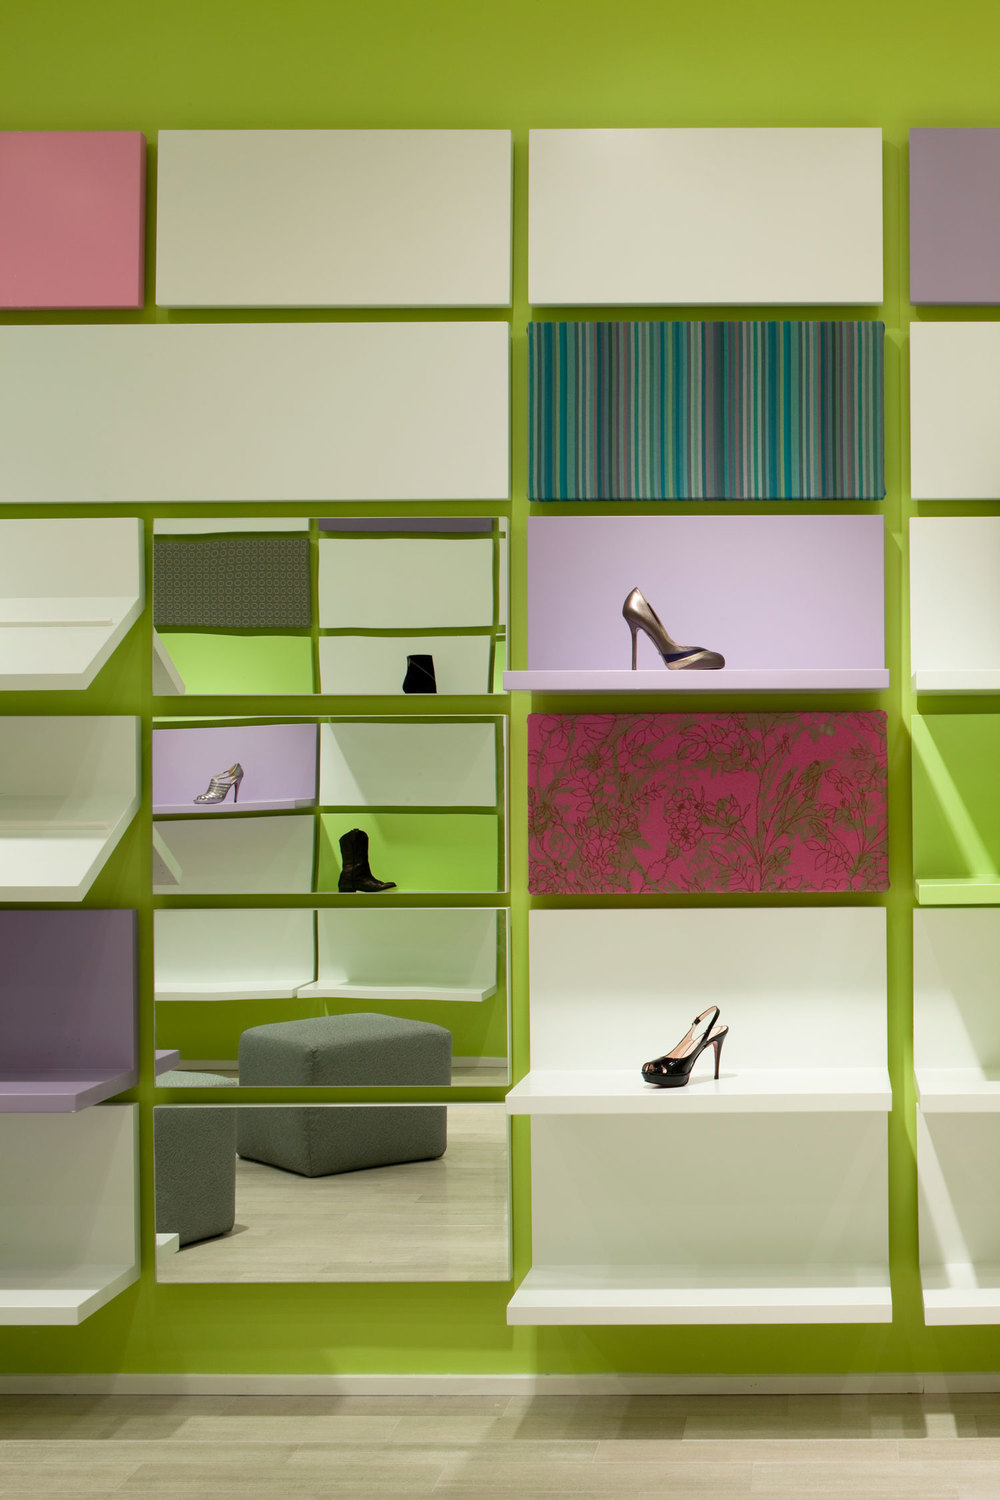 Sbx shoe store design 6.jpg